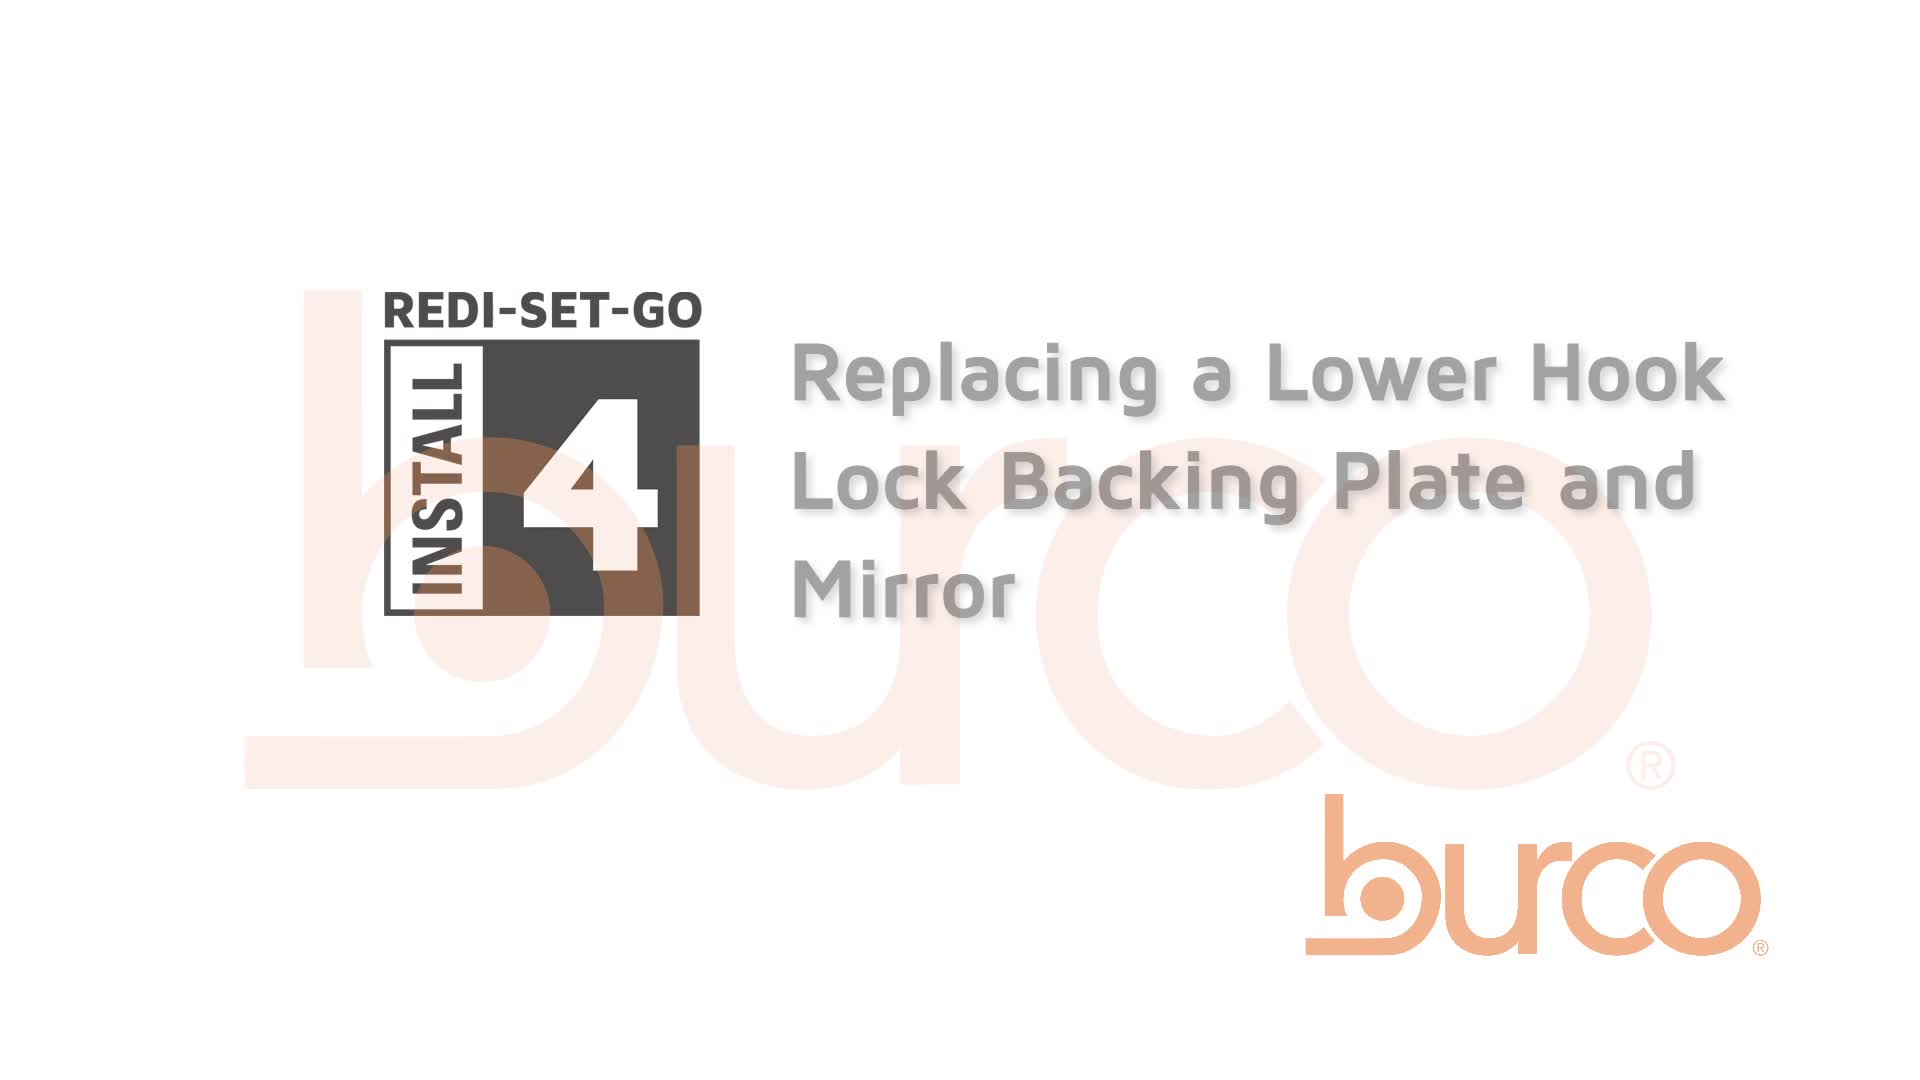 Replacement of the Lower Hook Lock Backing Plate and Mirror